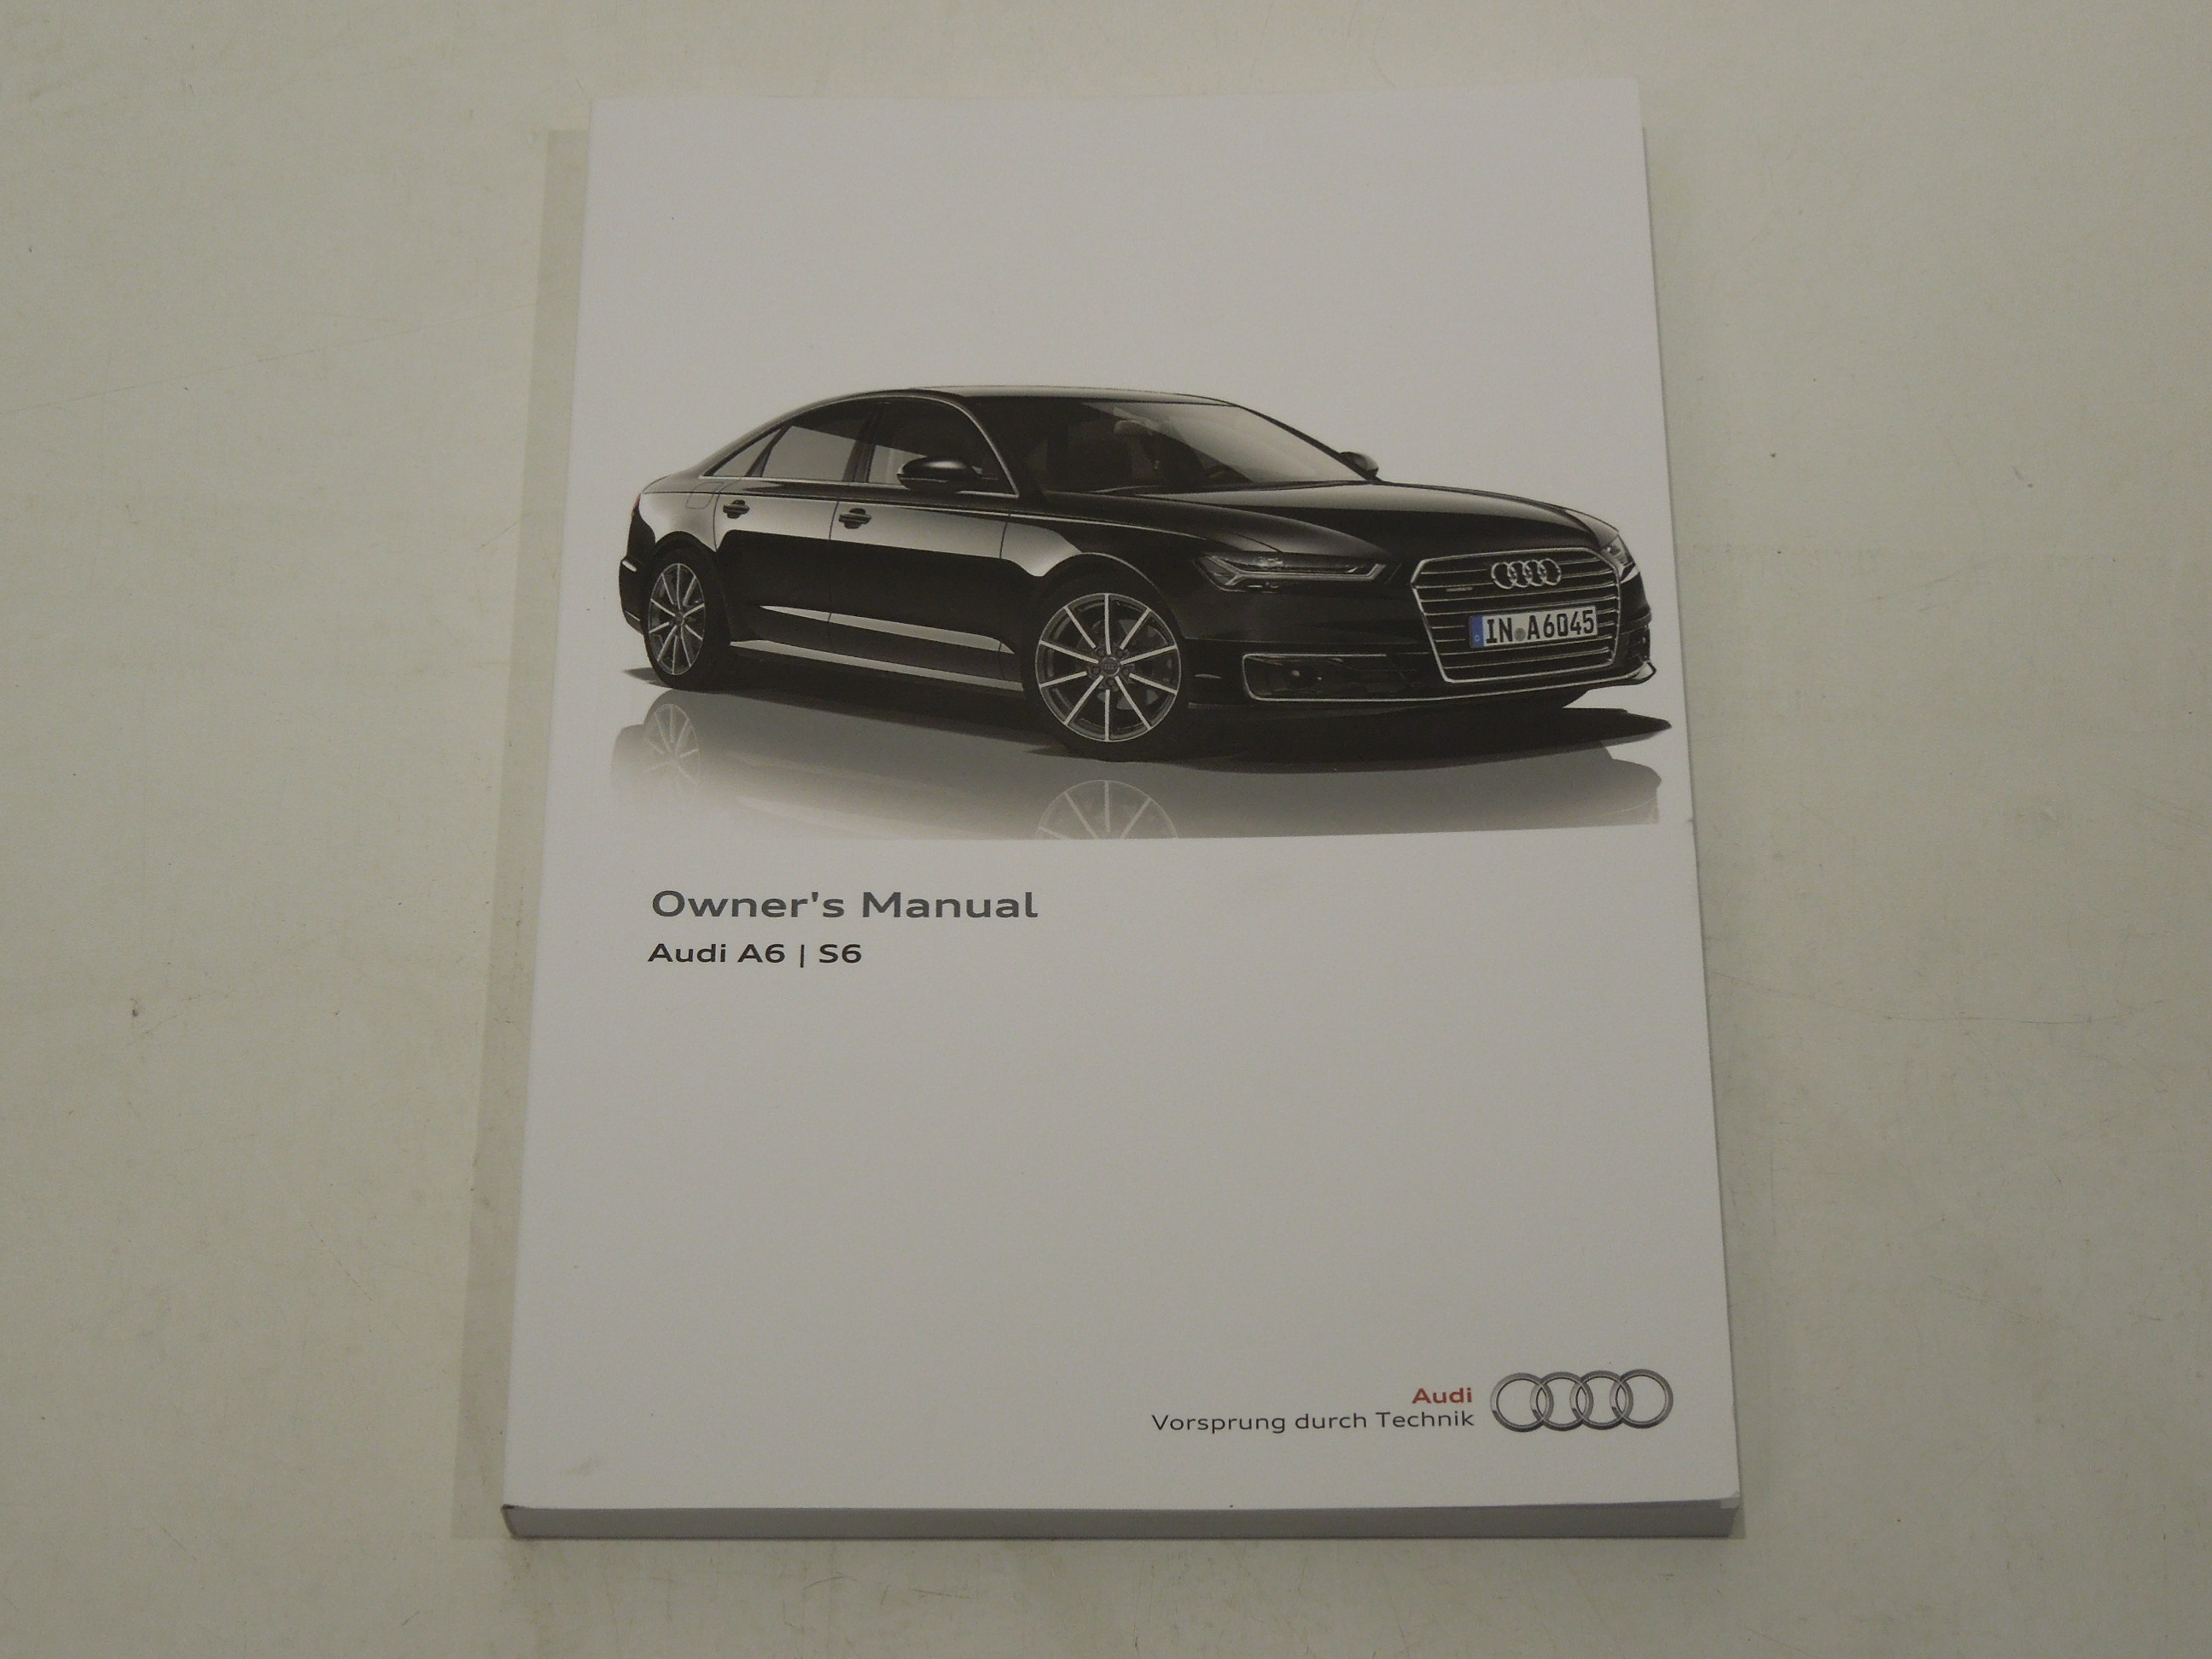 2002 audi rs6 owners manual free owners manual u2022 rh wordworksbysea com 2002 audi a6 quattro owners manual 2002 audi a6 owners manual free download